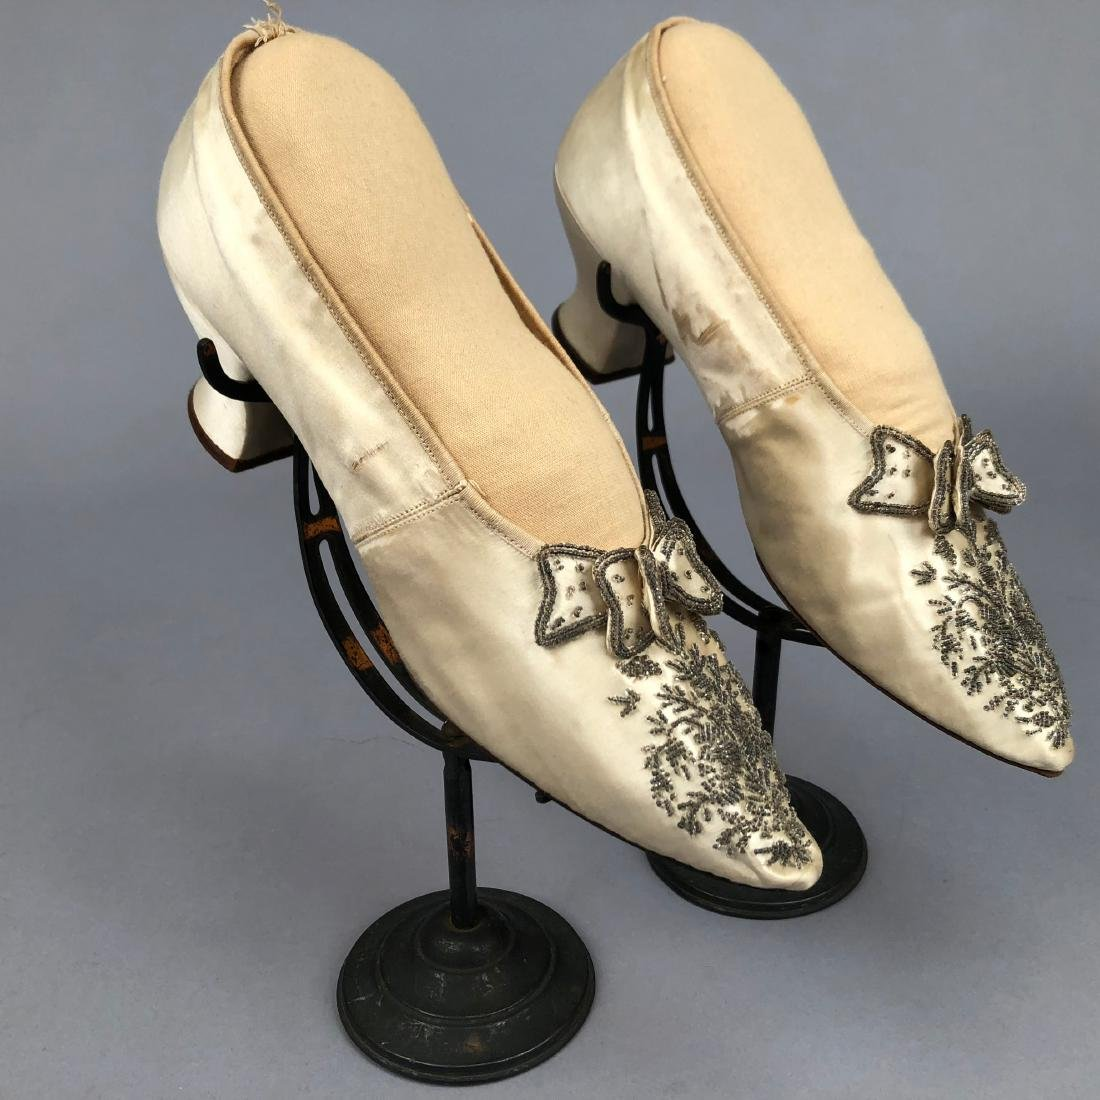 TWO PAIR BEADED SATIN WEDDING SHOES,  c. 1890 and 1914 - 2